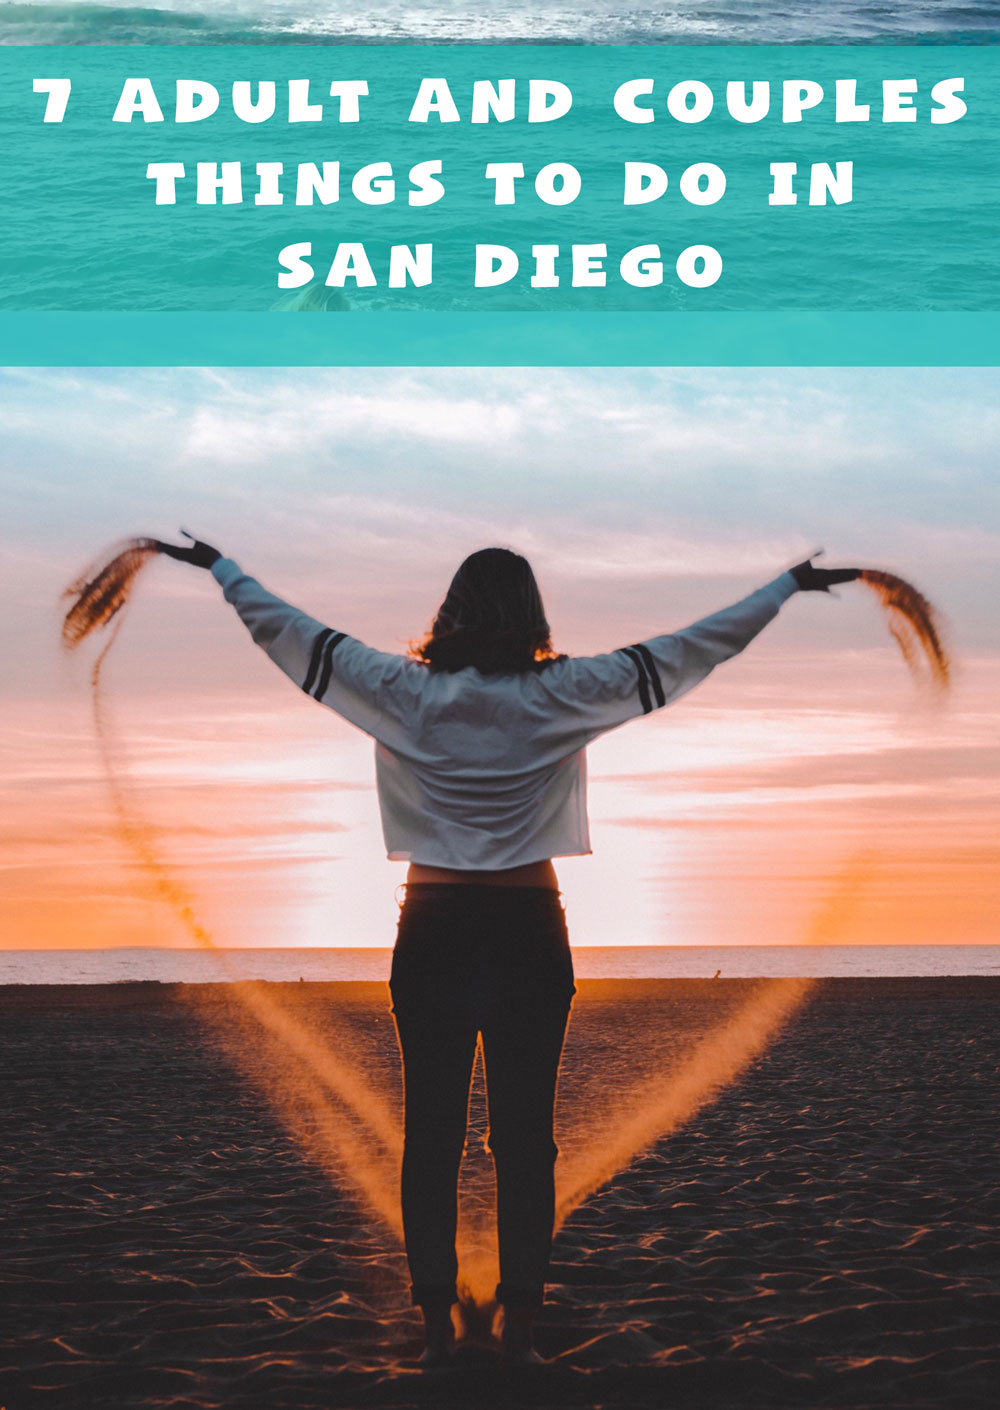 7 Adult Things to do in San Diego